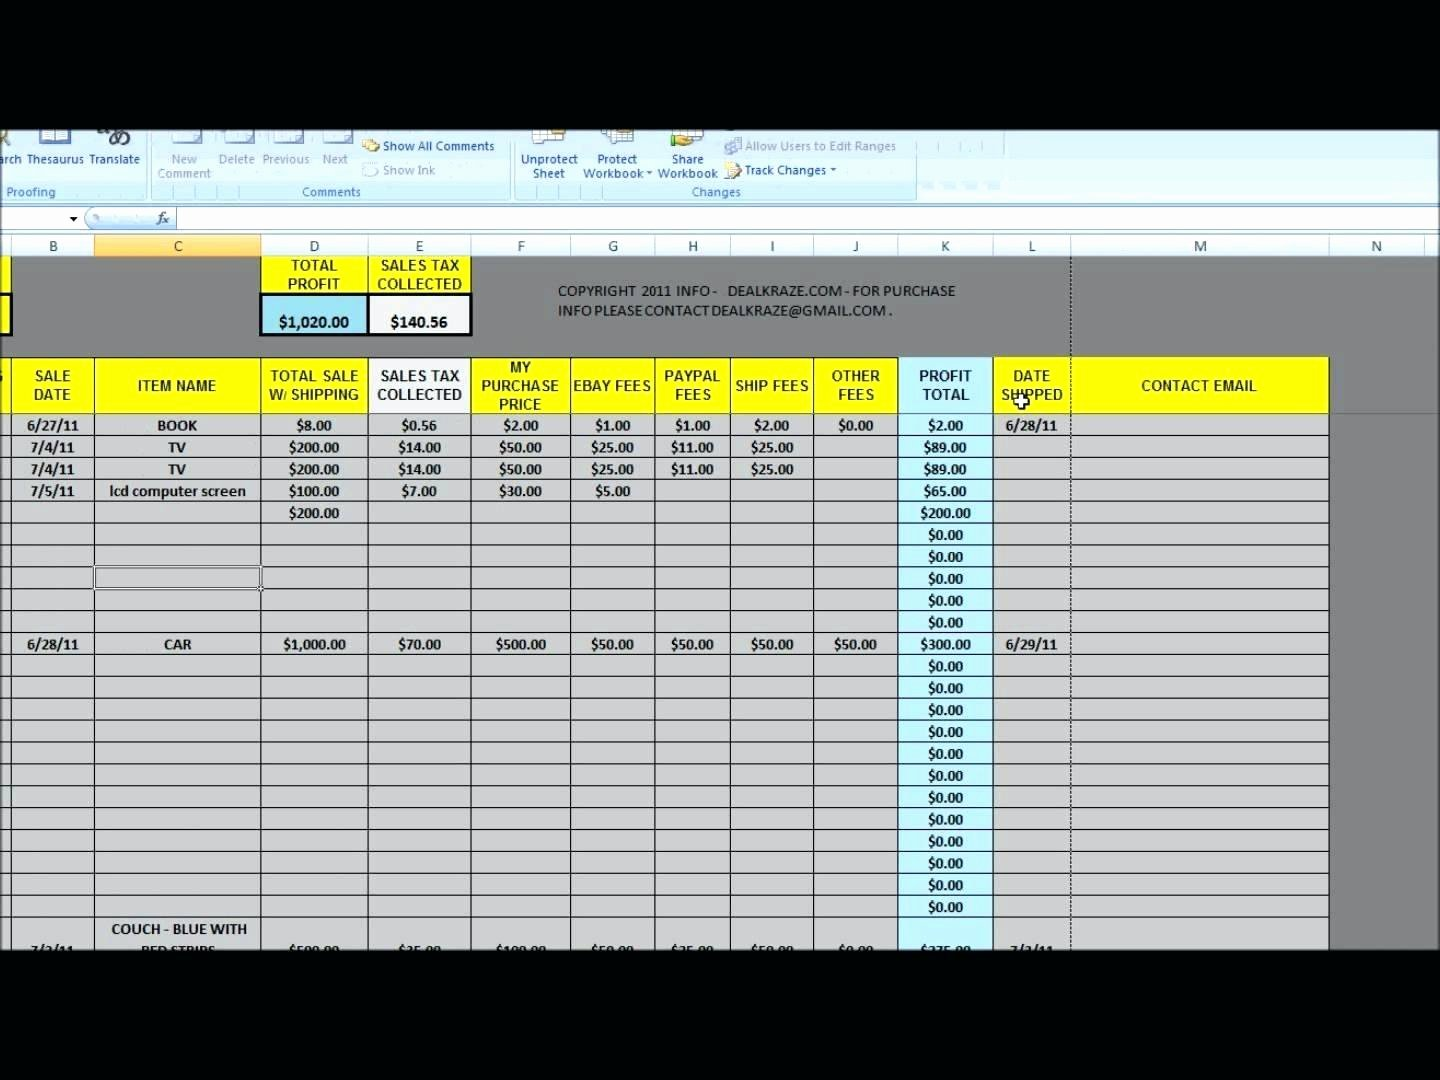 Sales Tracking Spreadsheet Template New Spreadsheet for Sales Tracking Invoice Template Leads